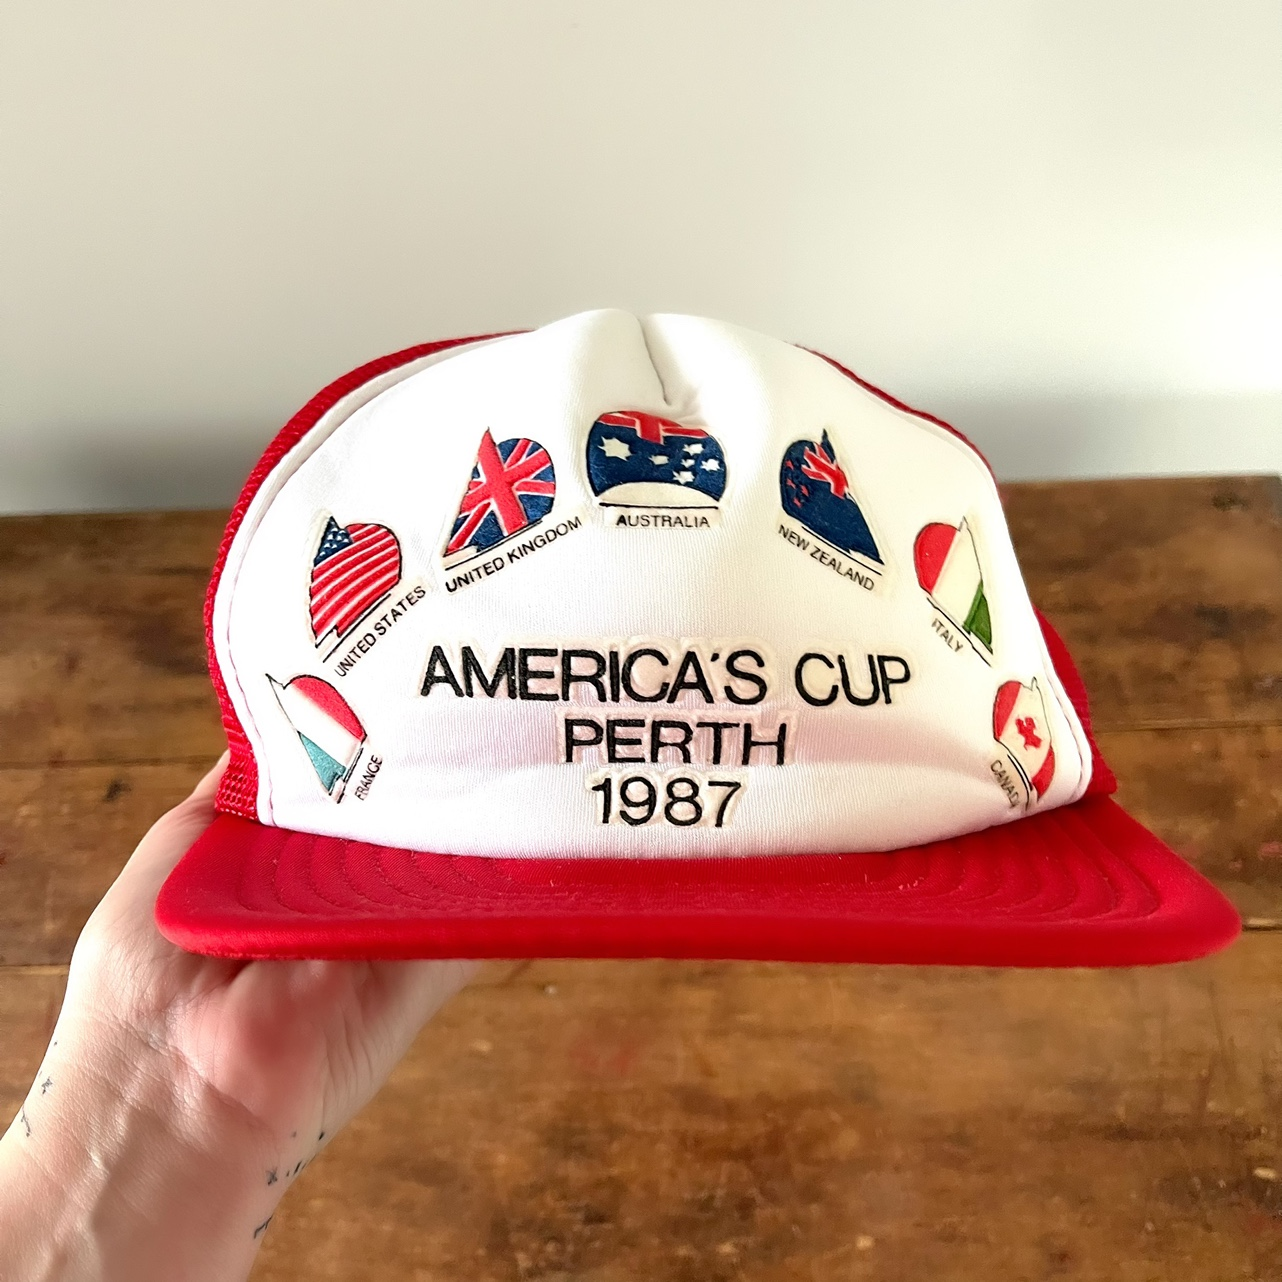 Product Image 1 - AMERICA'S CUP Perth 1987 Vintage